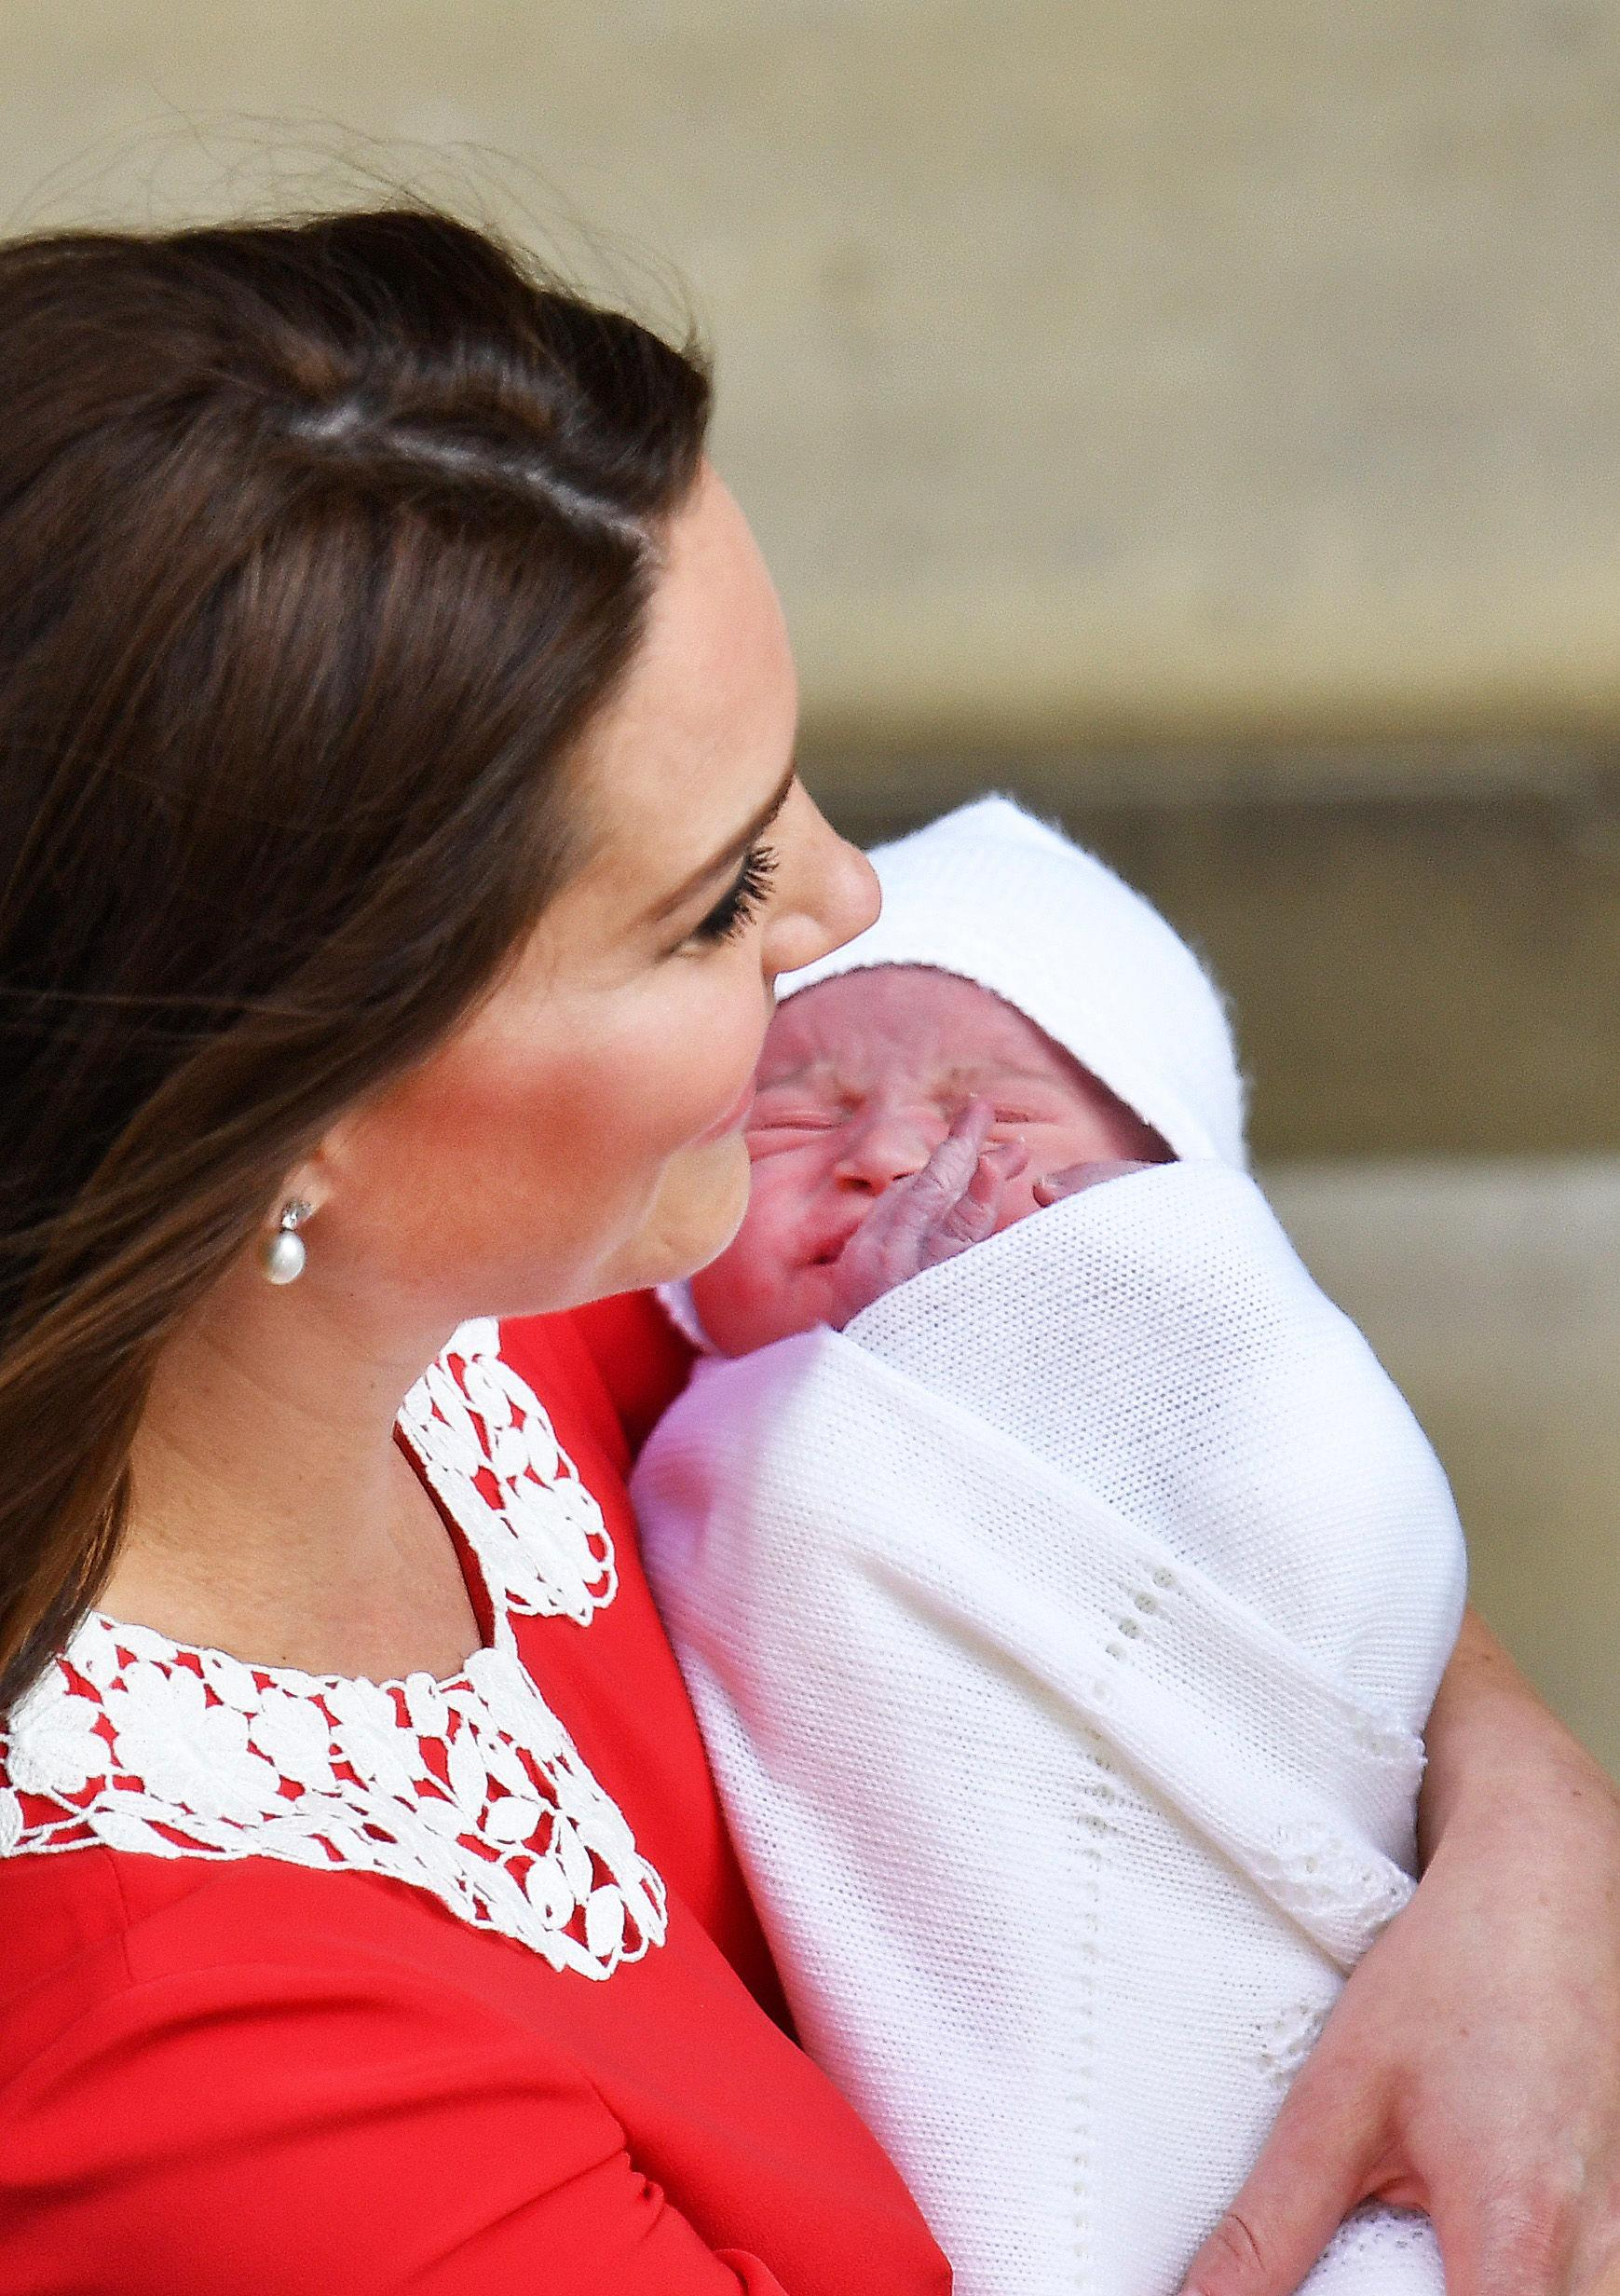 Kate, Duchess of Cambridge with their newborn baby son as they leave the Lindo wing at St Mary's Hospital in London London, Monday, April 23, 2018. The Duchess of Cambridge gave birth Monday to a healthy baby boy — a third child for Kate and Prince William and fifth in line to the British throne. (John Stillwell/Pool photo via AP)